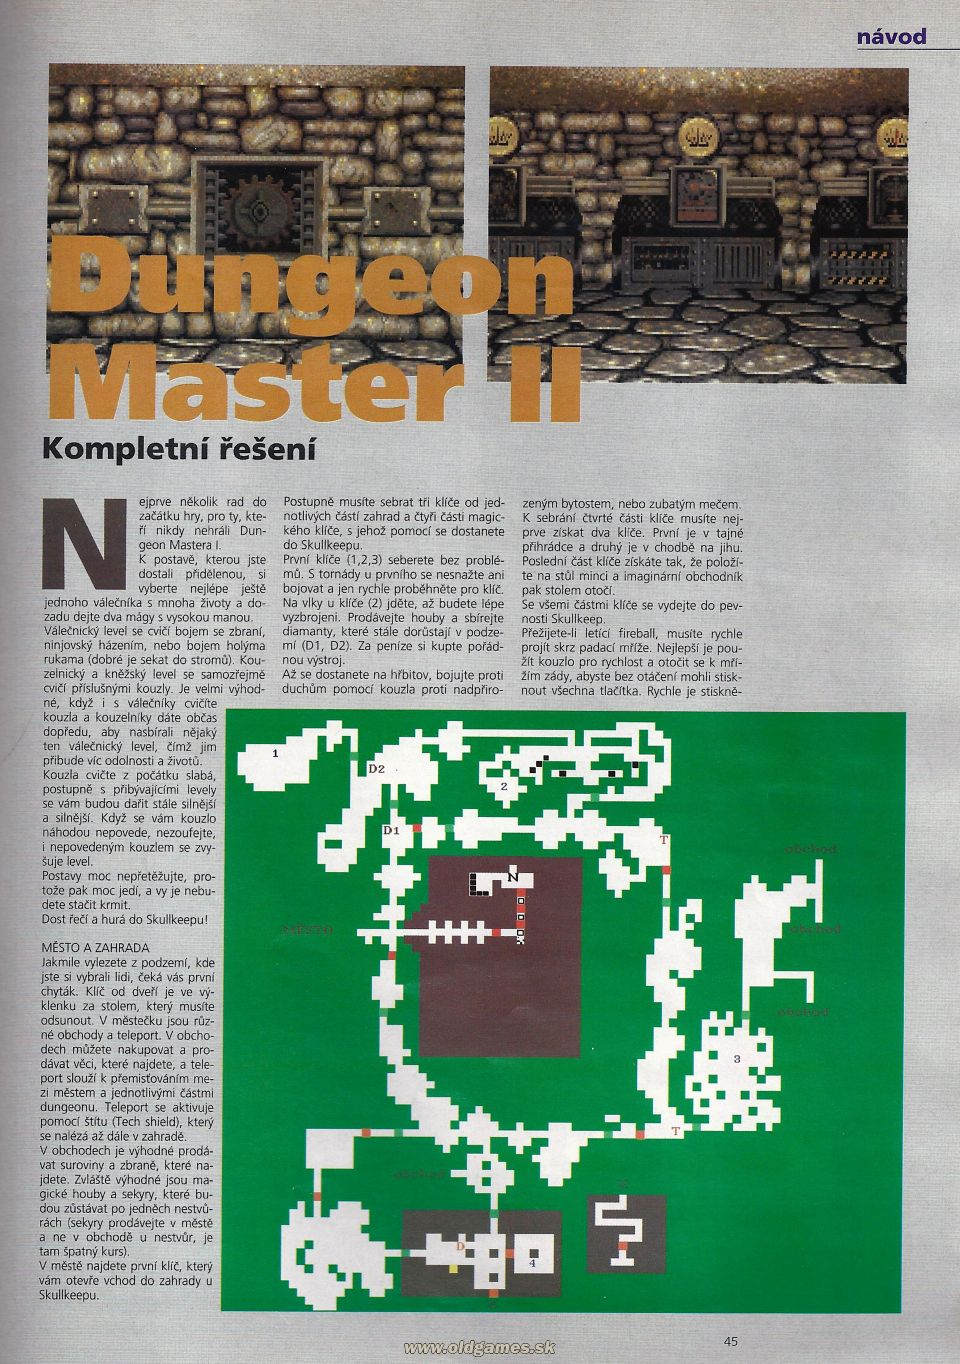 Dungeon Master II Hints published in Czech magazine 'Level', Issue #8 September 1995, Page 45